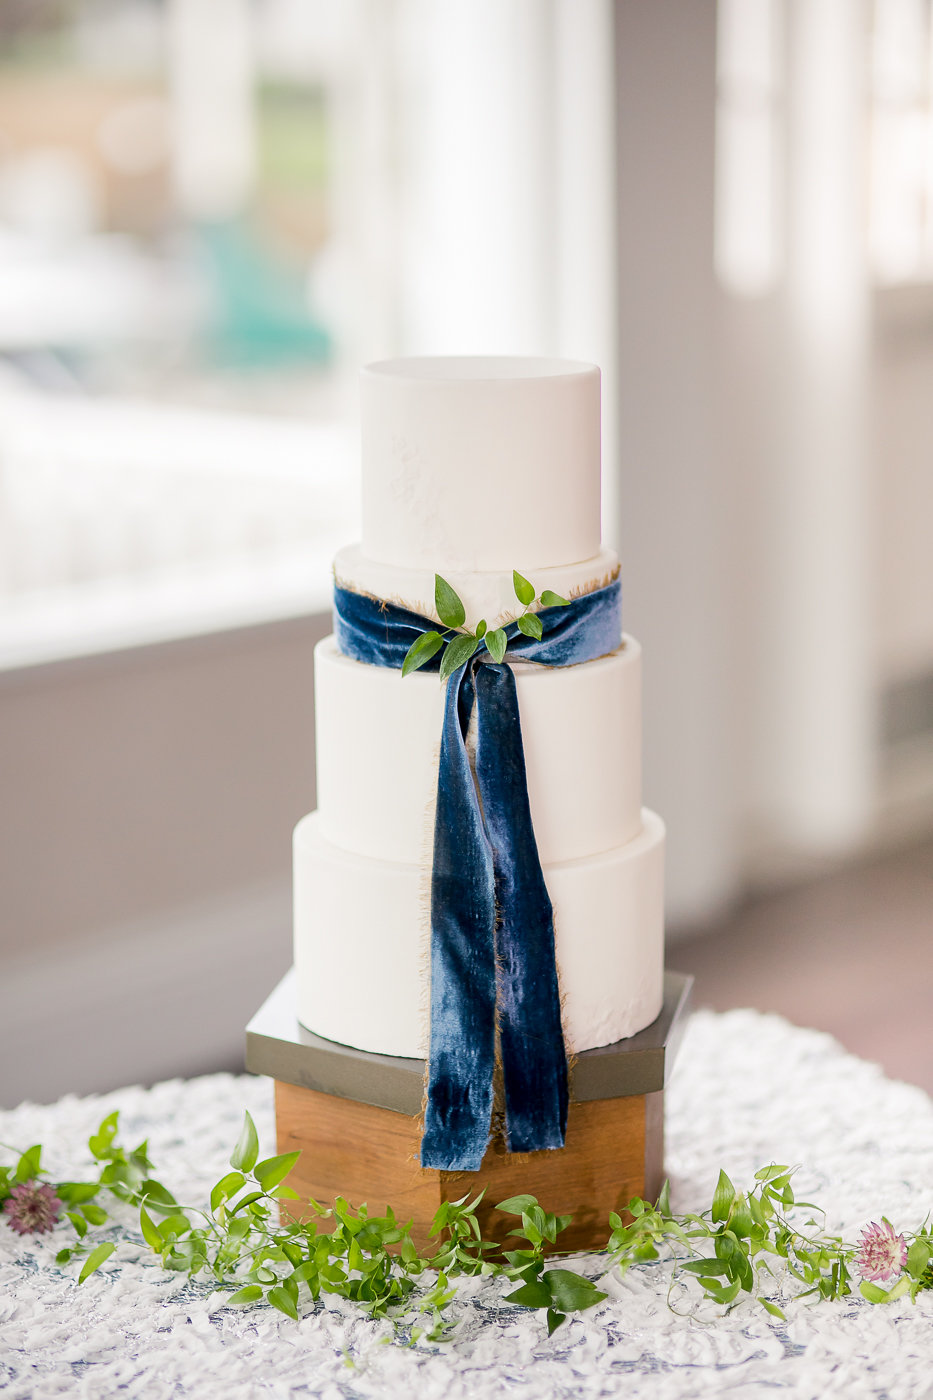 Photo by: Michelle Chang Photography  Cake Design: The Batter Up Cakery